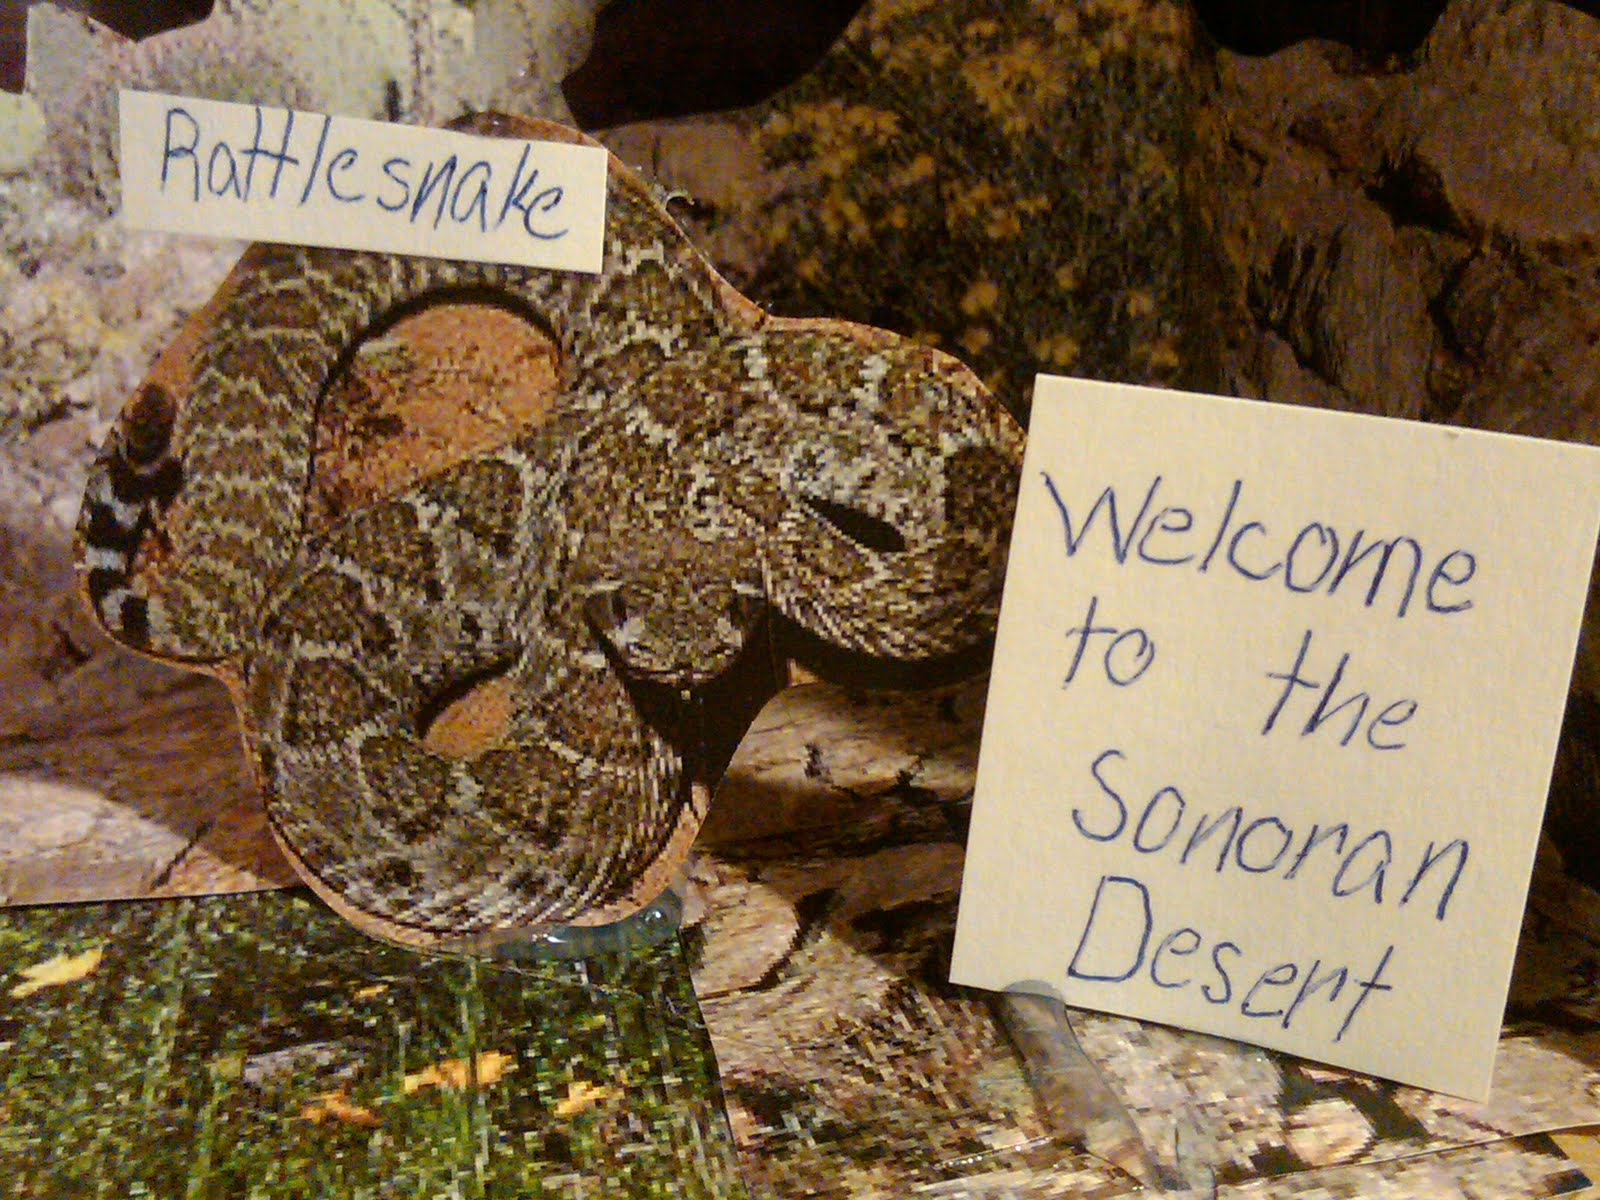 Rattlesnakes In The Sonoran Desert